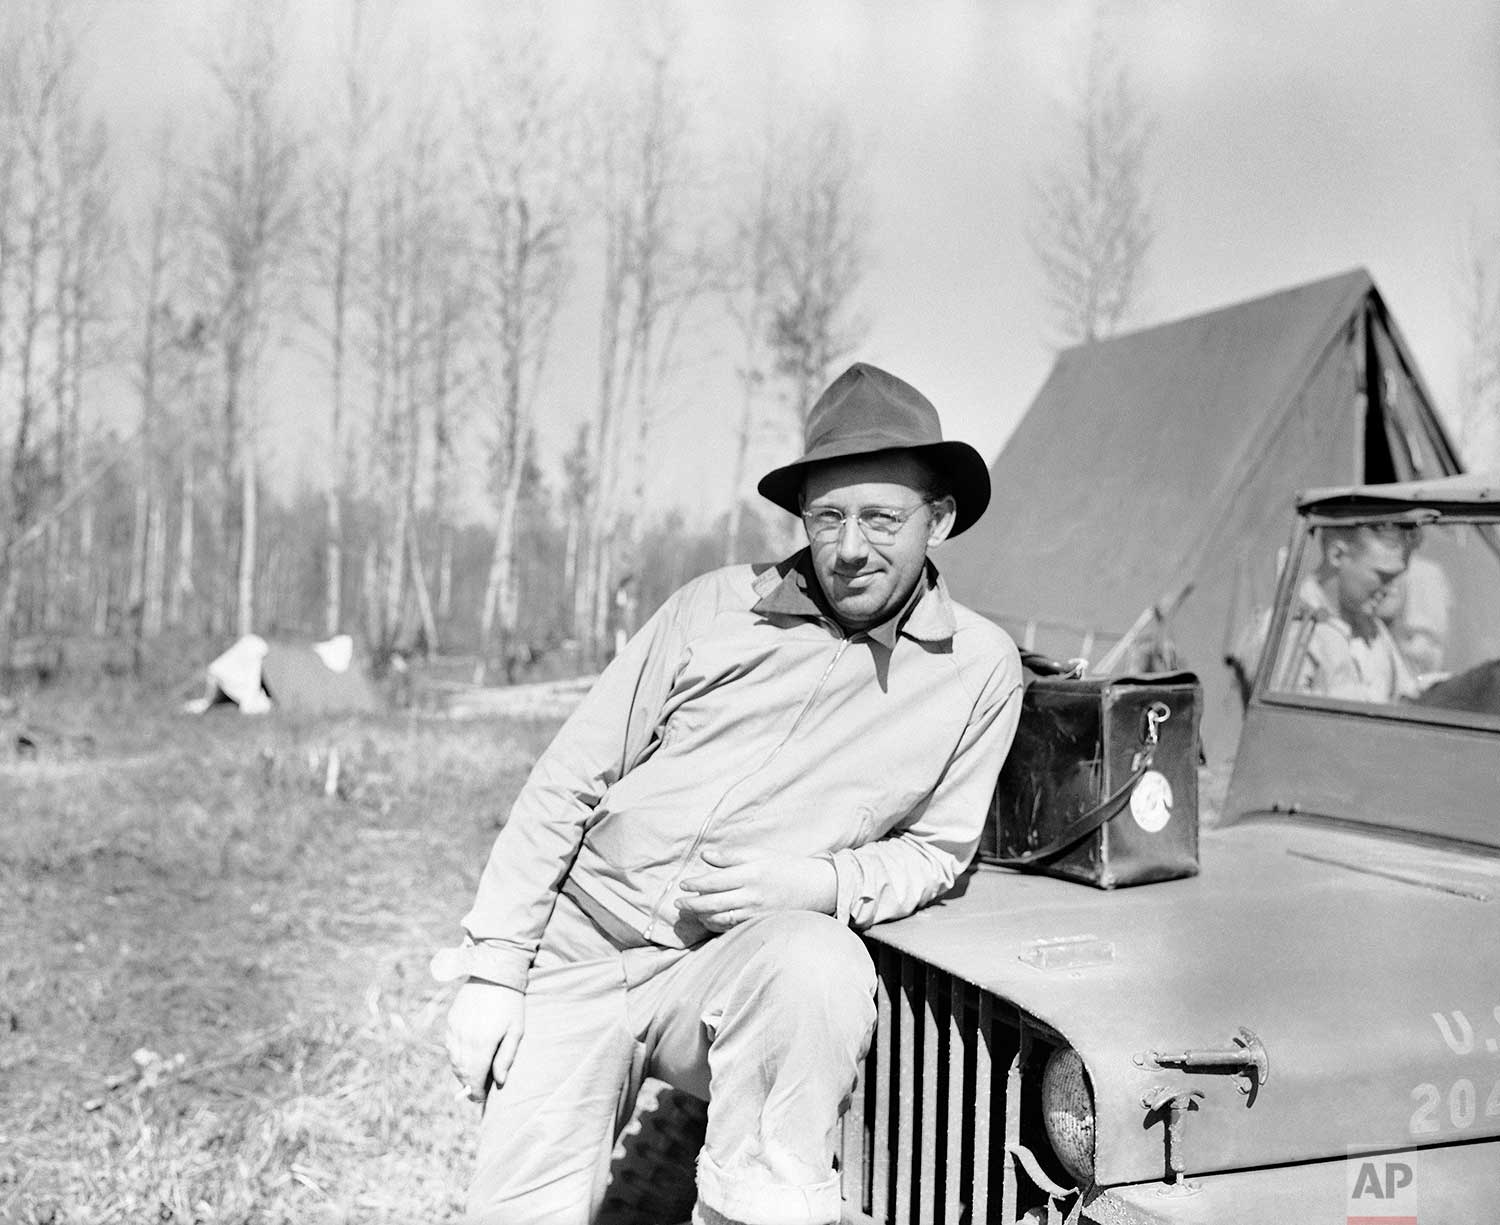 Grant MacDonald, Wide World photographer, unshaven, very dirty, and slightly unhappy about it all, rests in the dust and mosquitoes, after reaching the end of the line, last outpost of construction crews on the Alaska road between Fort St. John and Fort Nelson, June 6, 1942. (AP Photo)